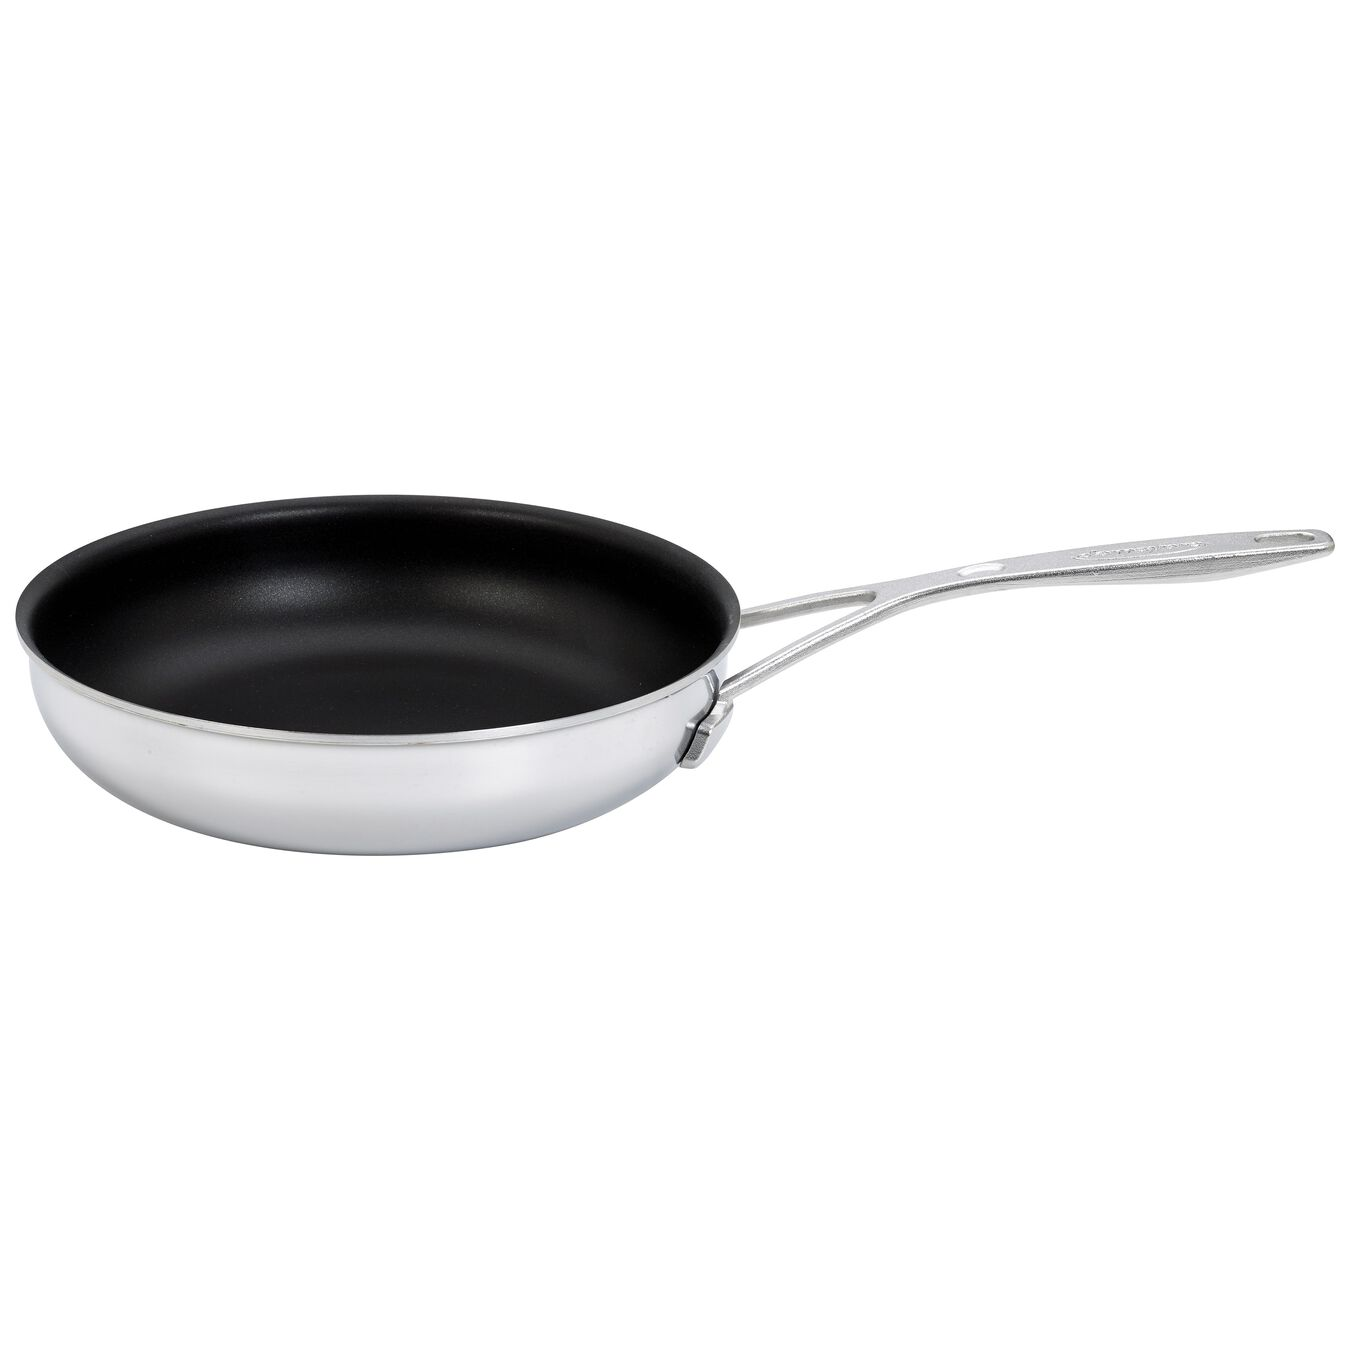 8-inch, 18/10 Stainless Steel, Non-stick, PTFE, Frying pan,,large 1